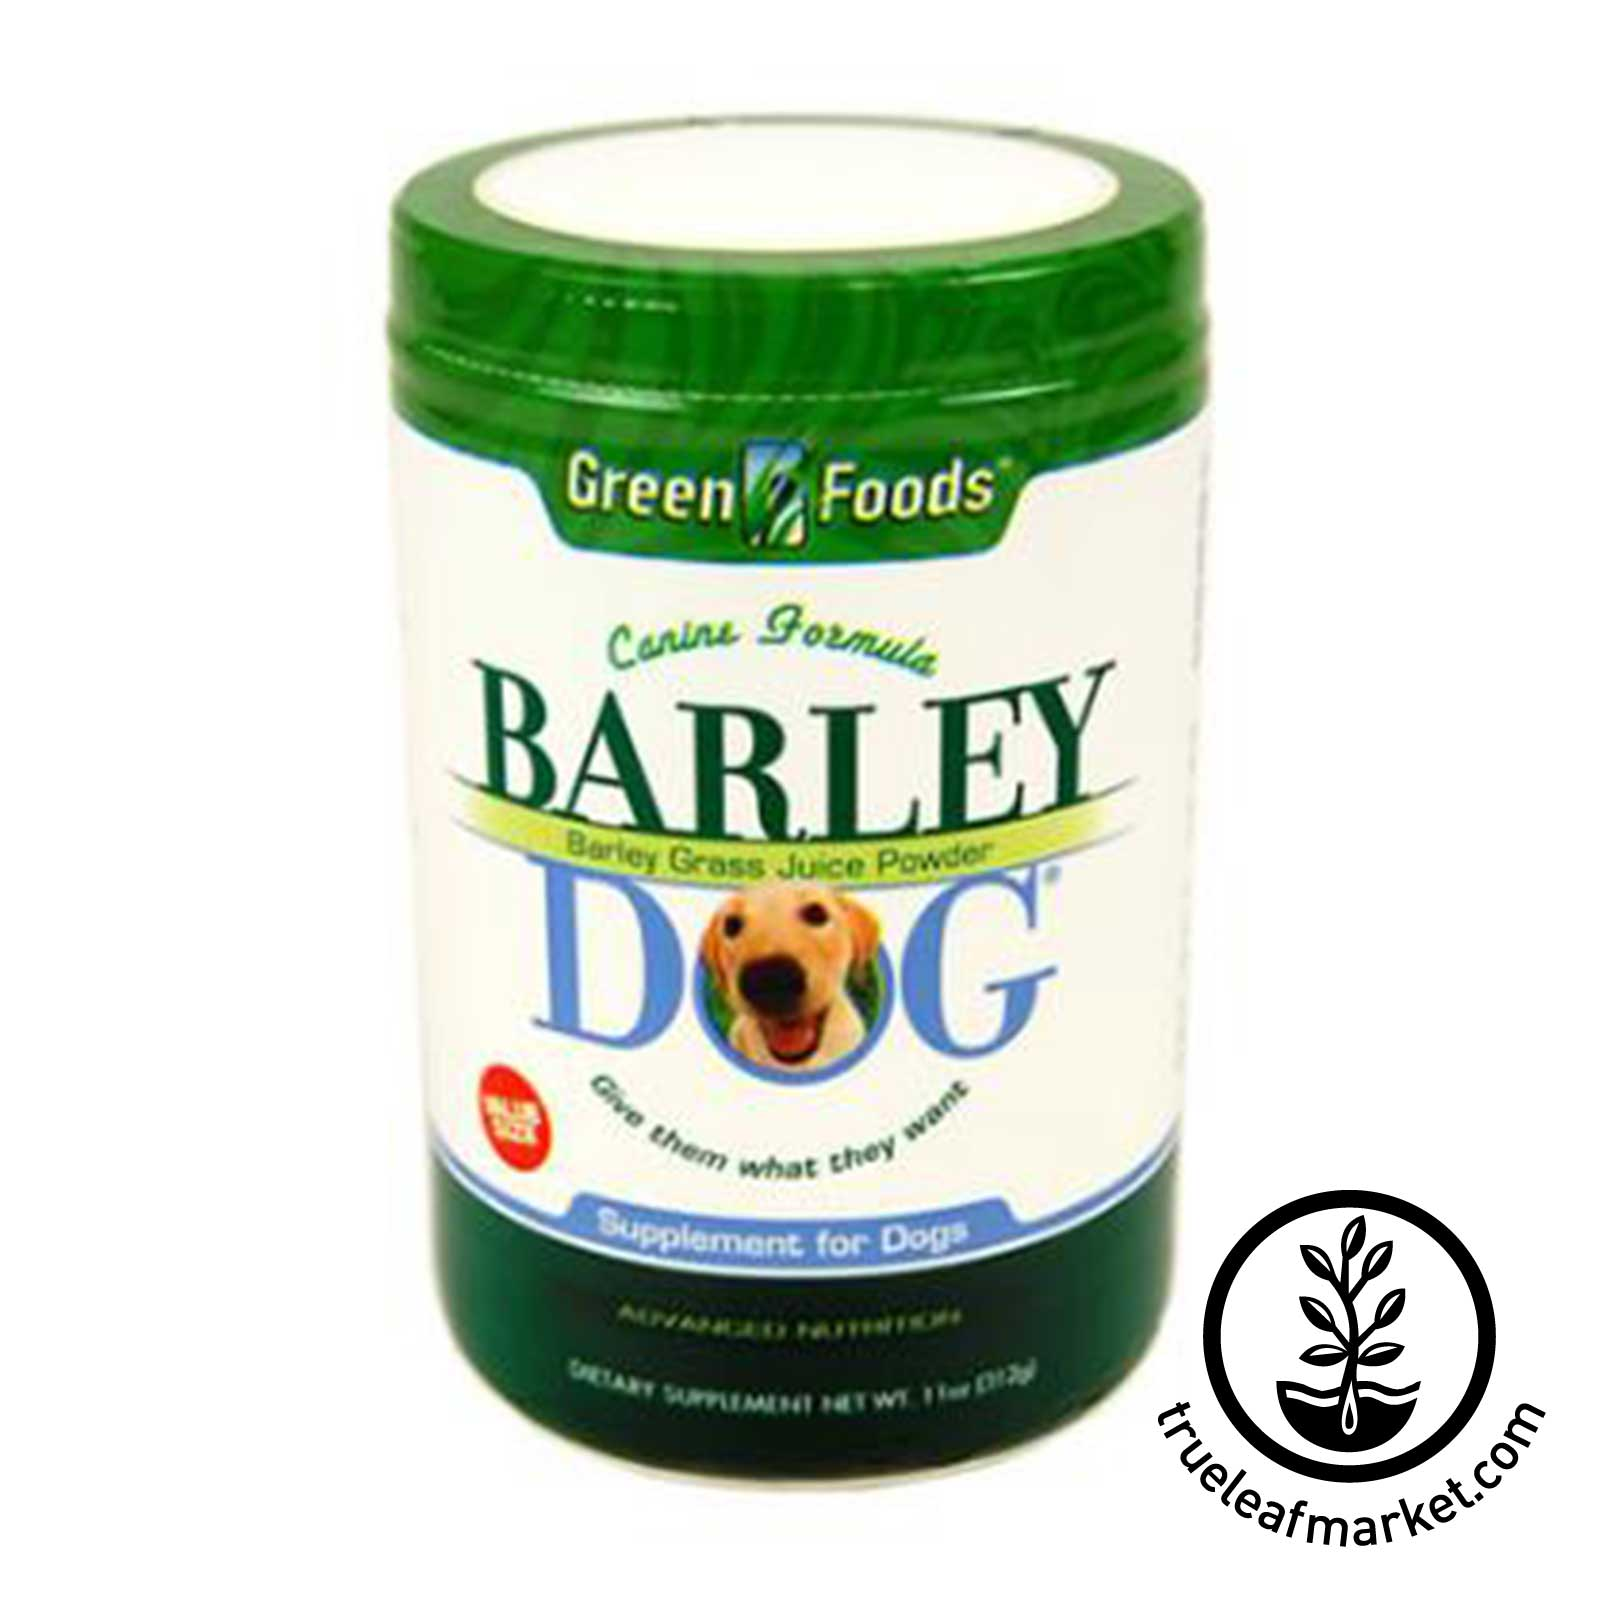 Barley Dog 11 oz.